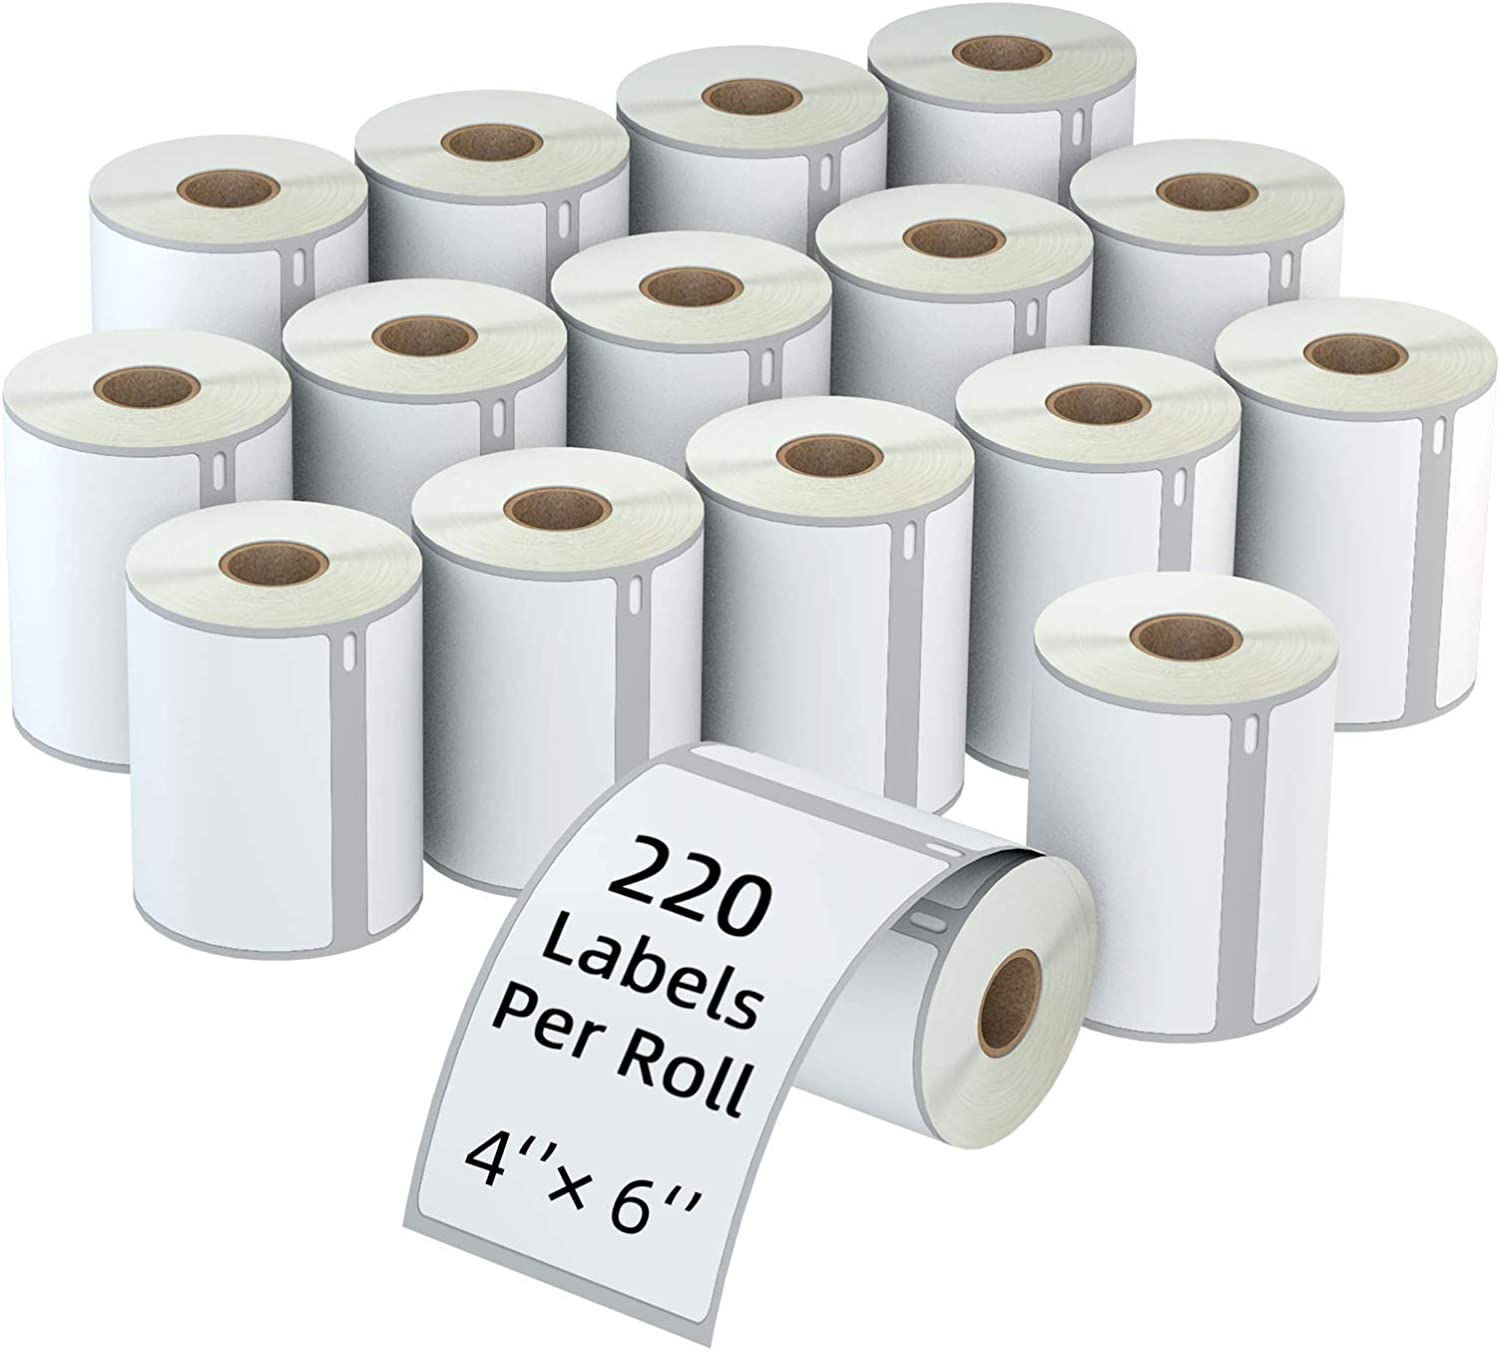 1744907 Best Print Dymo Compatible 4 x 6 inch Thermal Labels 1 roll of 220